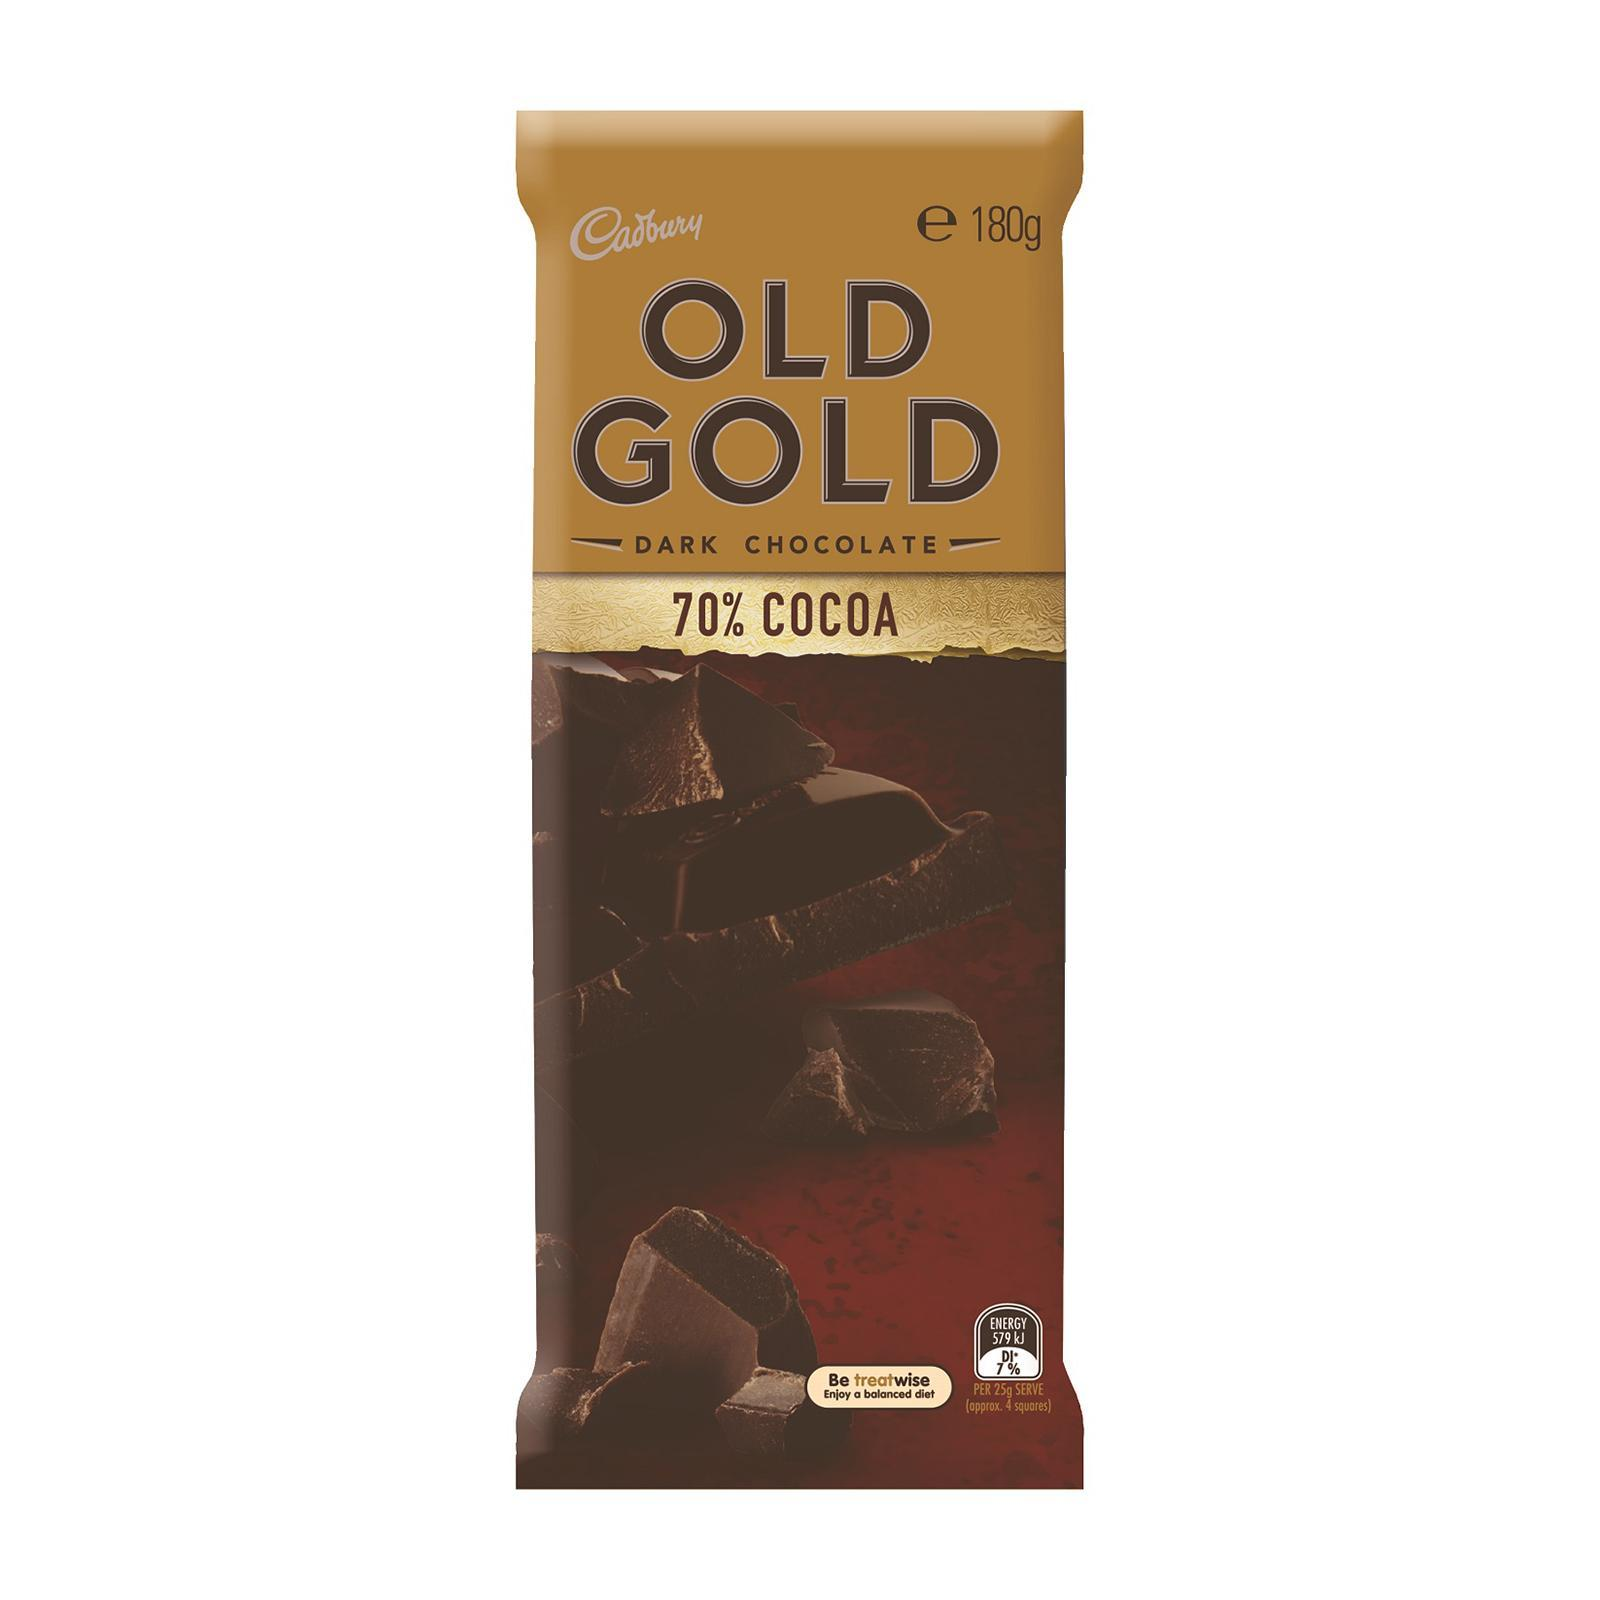 Cadbury Old Gold 70% Cocoa Dark Chocolate Block